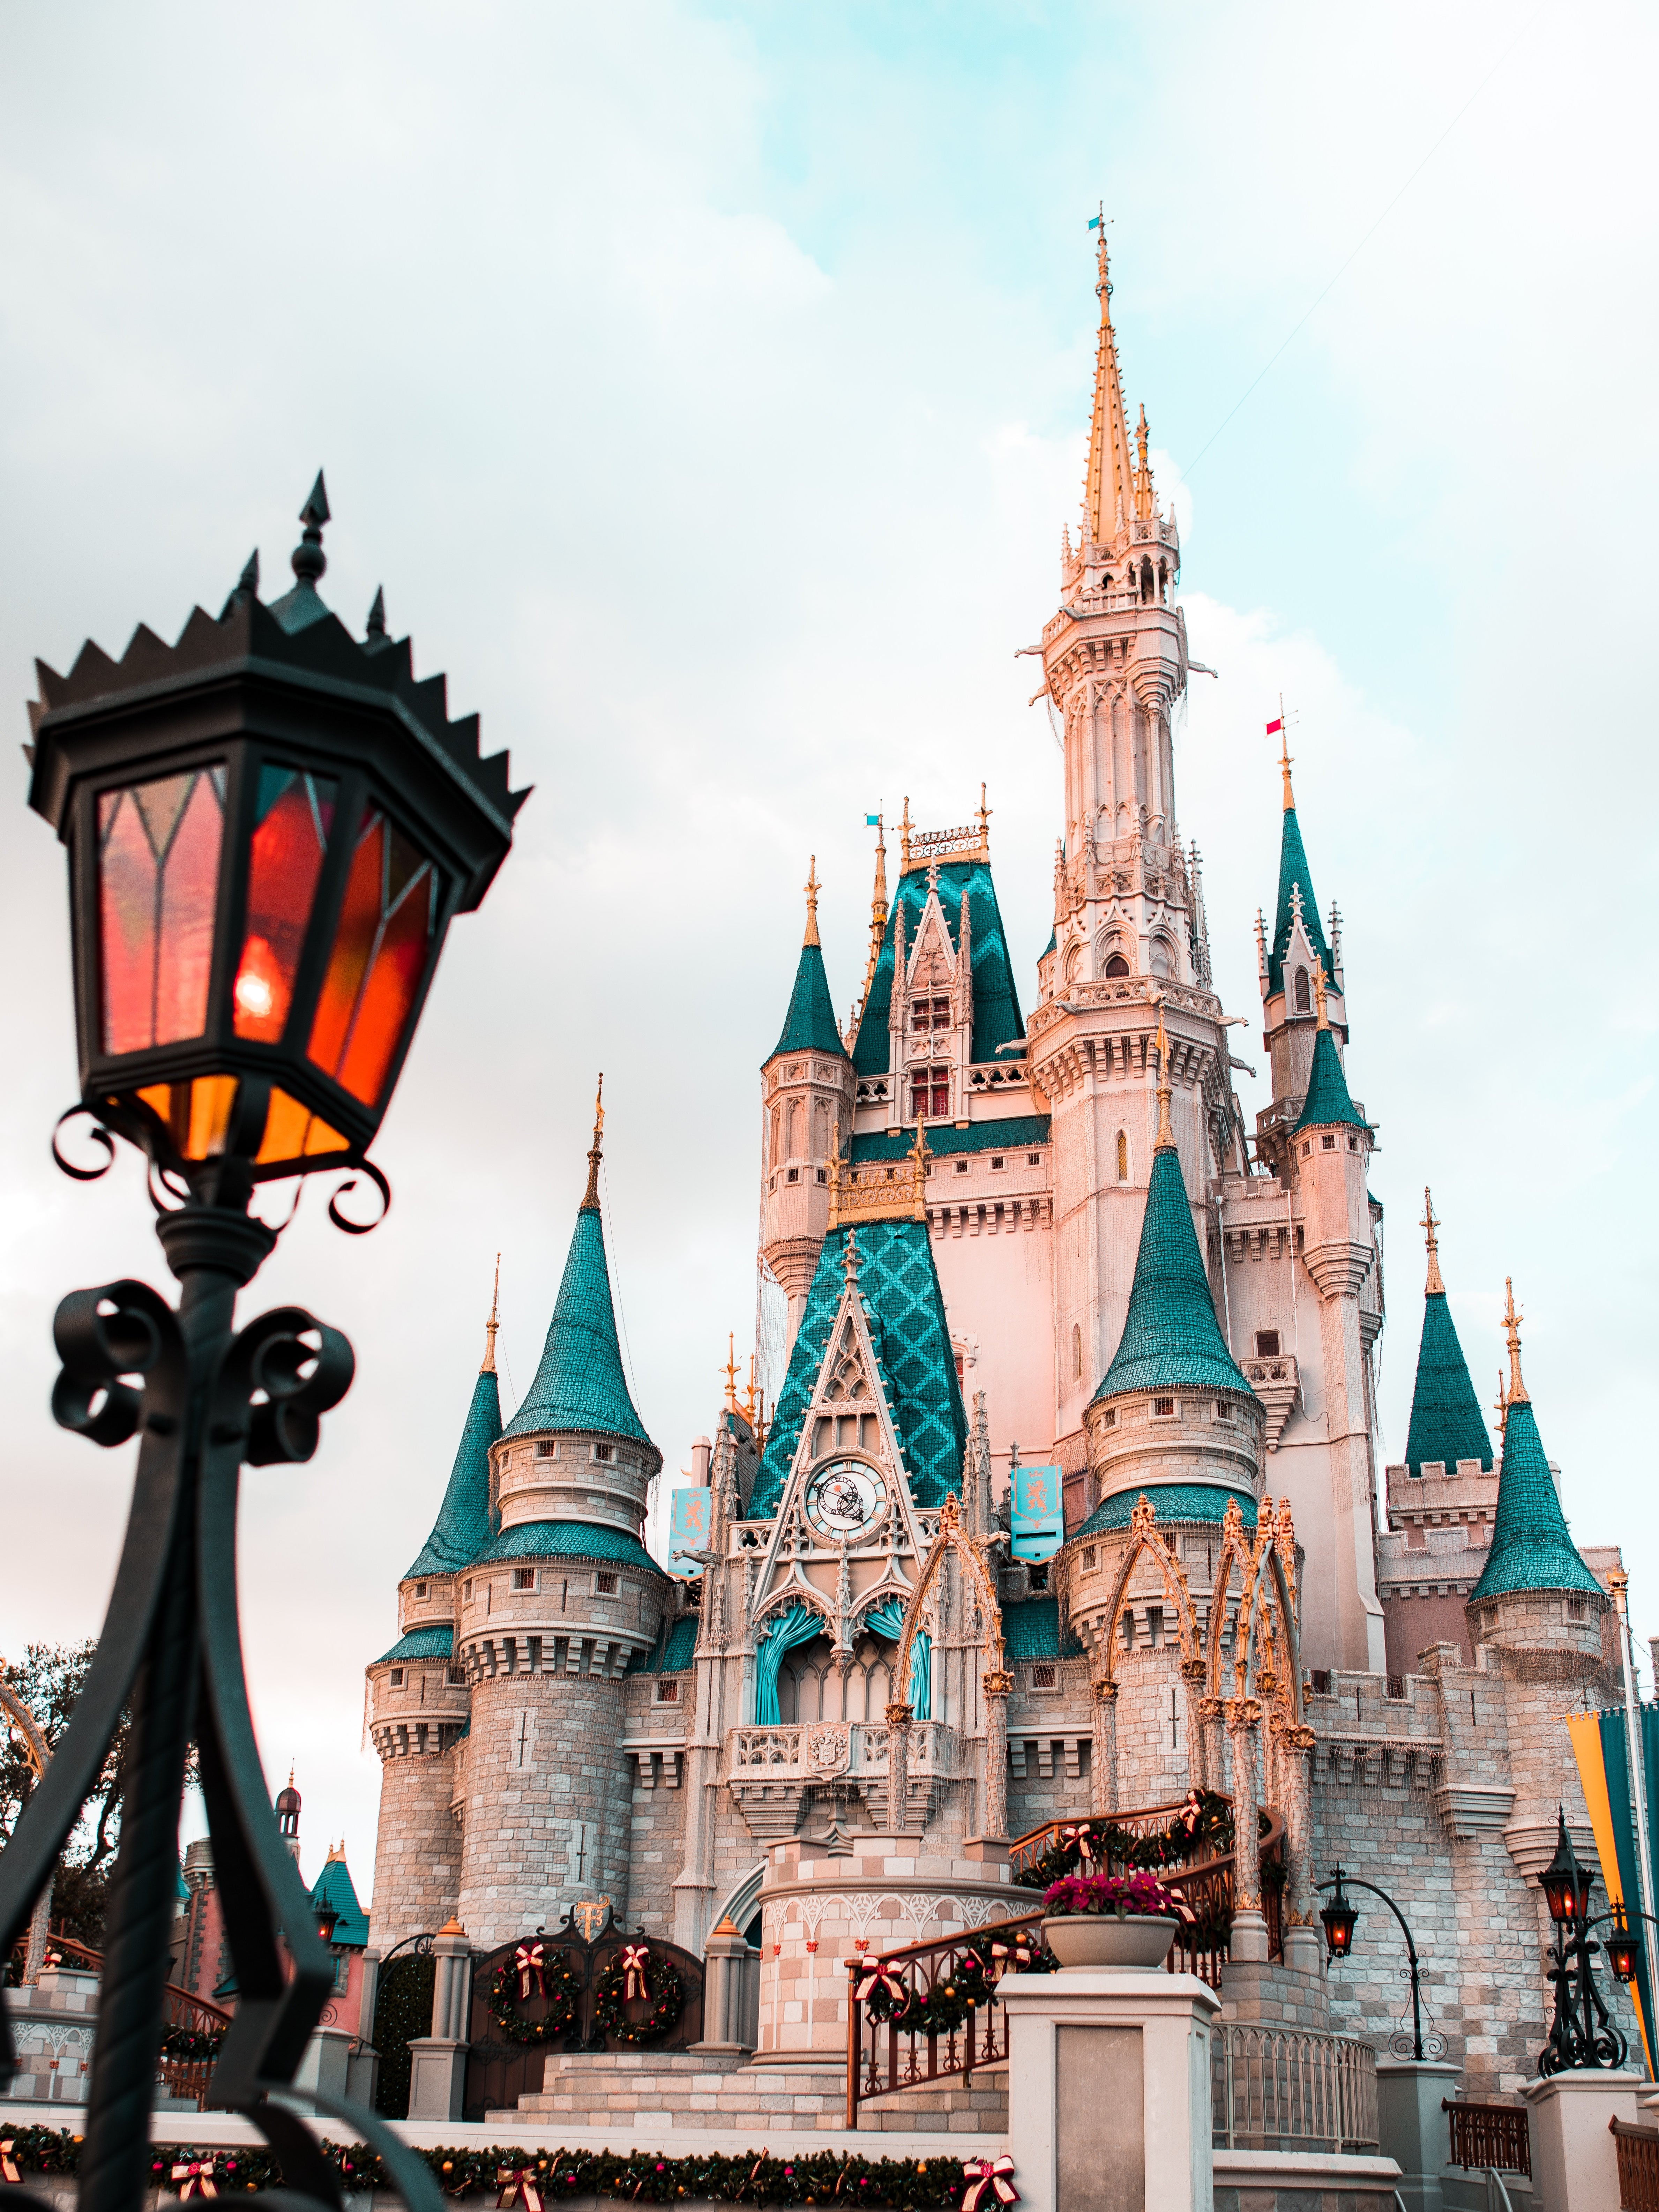 We Bet You Didn't Know About These Disney World Secrets